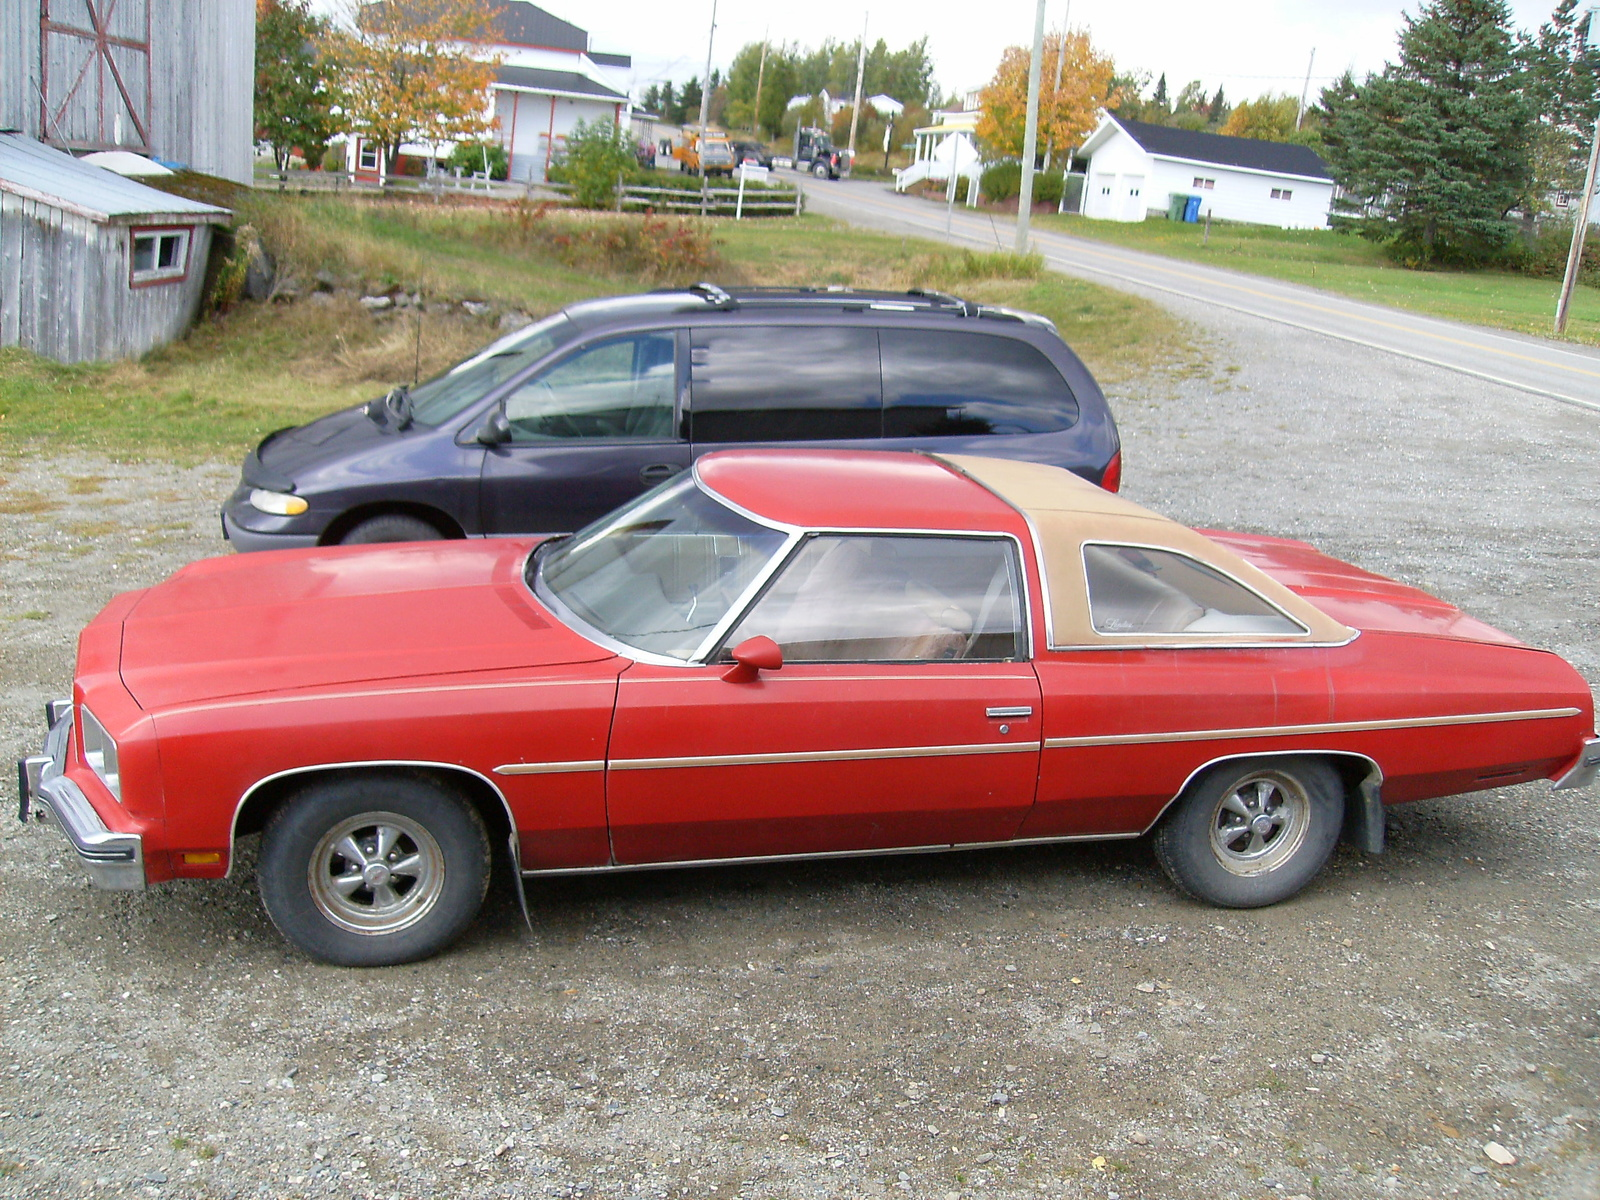 Picture of 1976 Chevrolet Impala